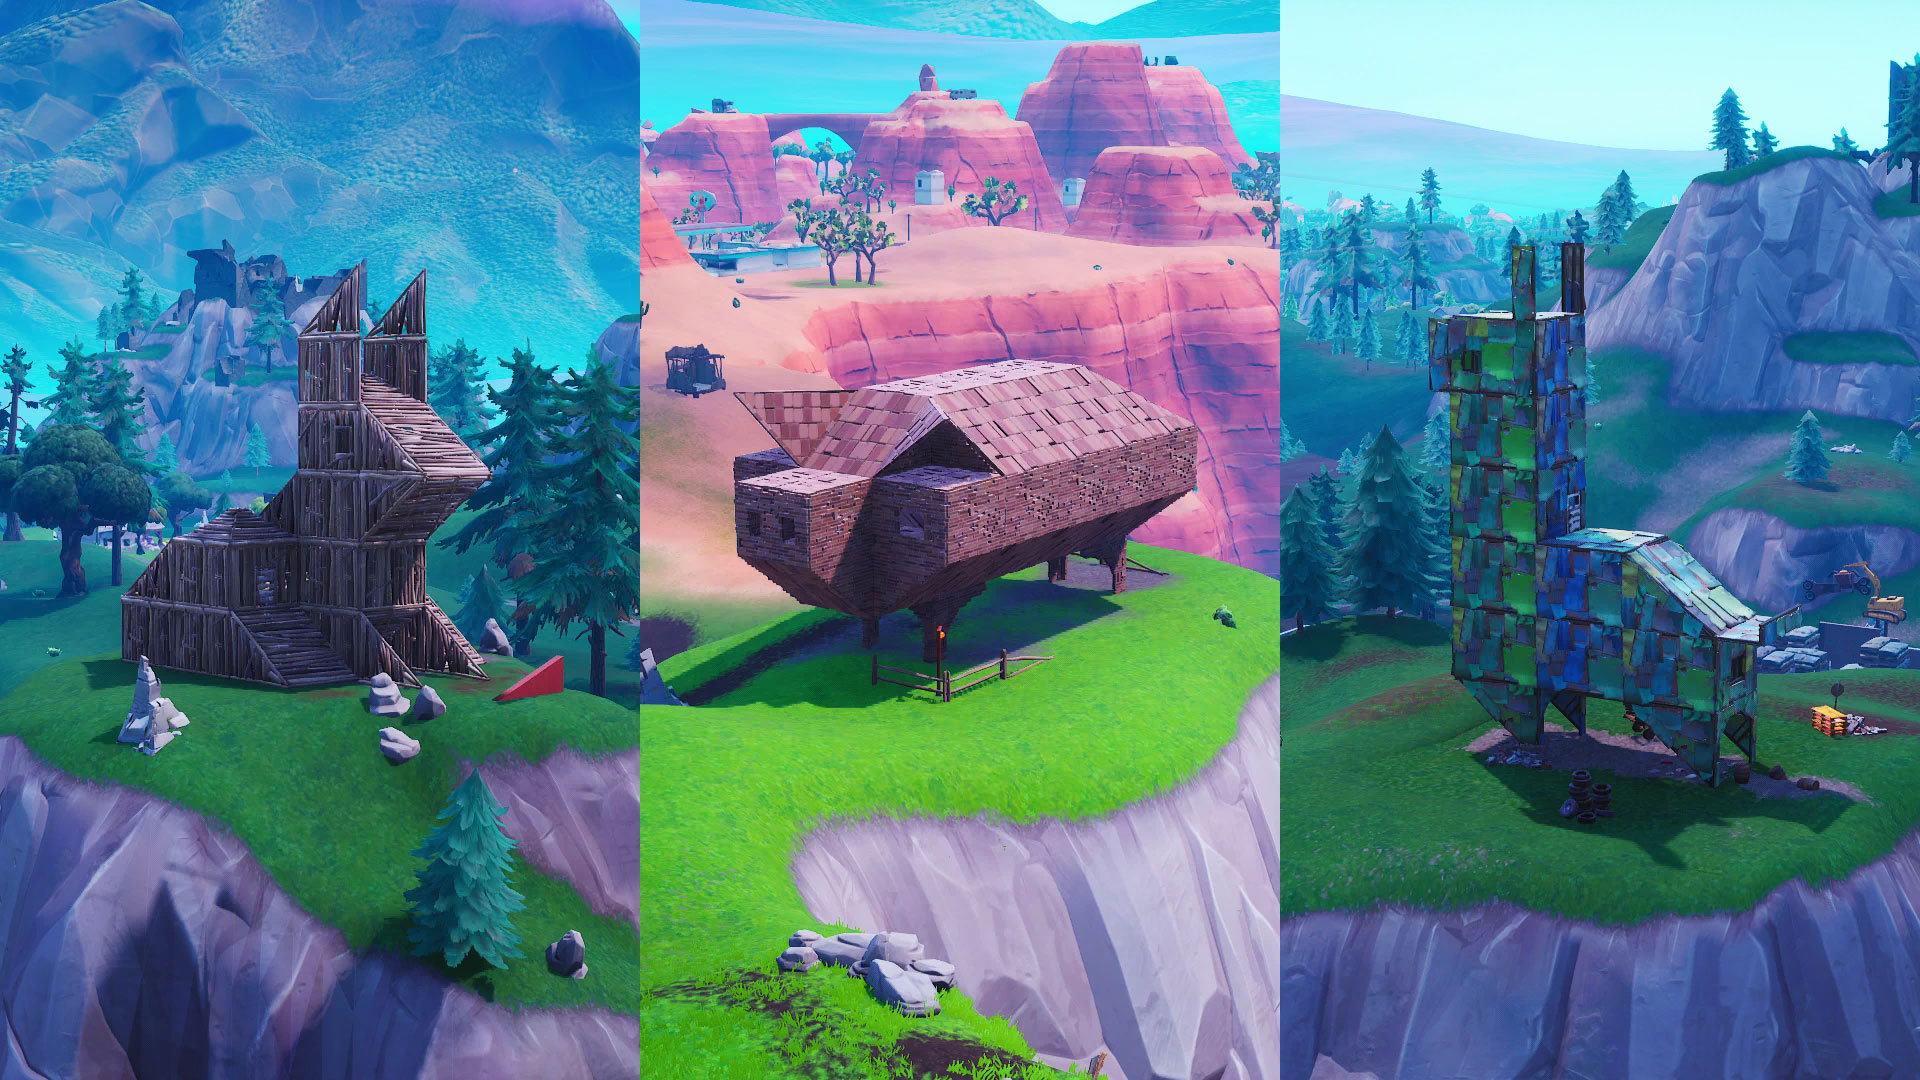 where to visit a wooden rabbit a stone pig and a metal llama in fortnite season 8 week 6 challenge gamesradar - fortnite wooden rabbit stone pig location